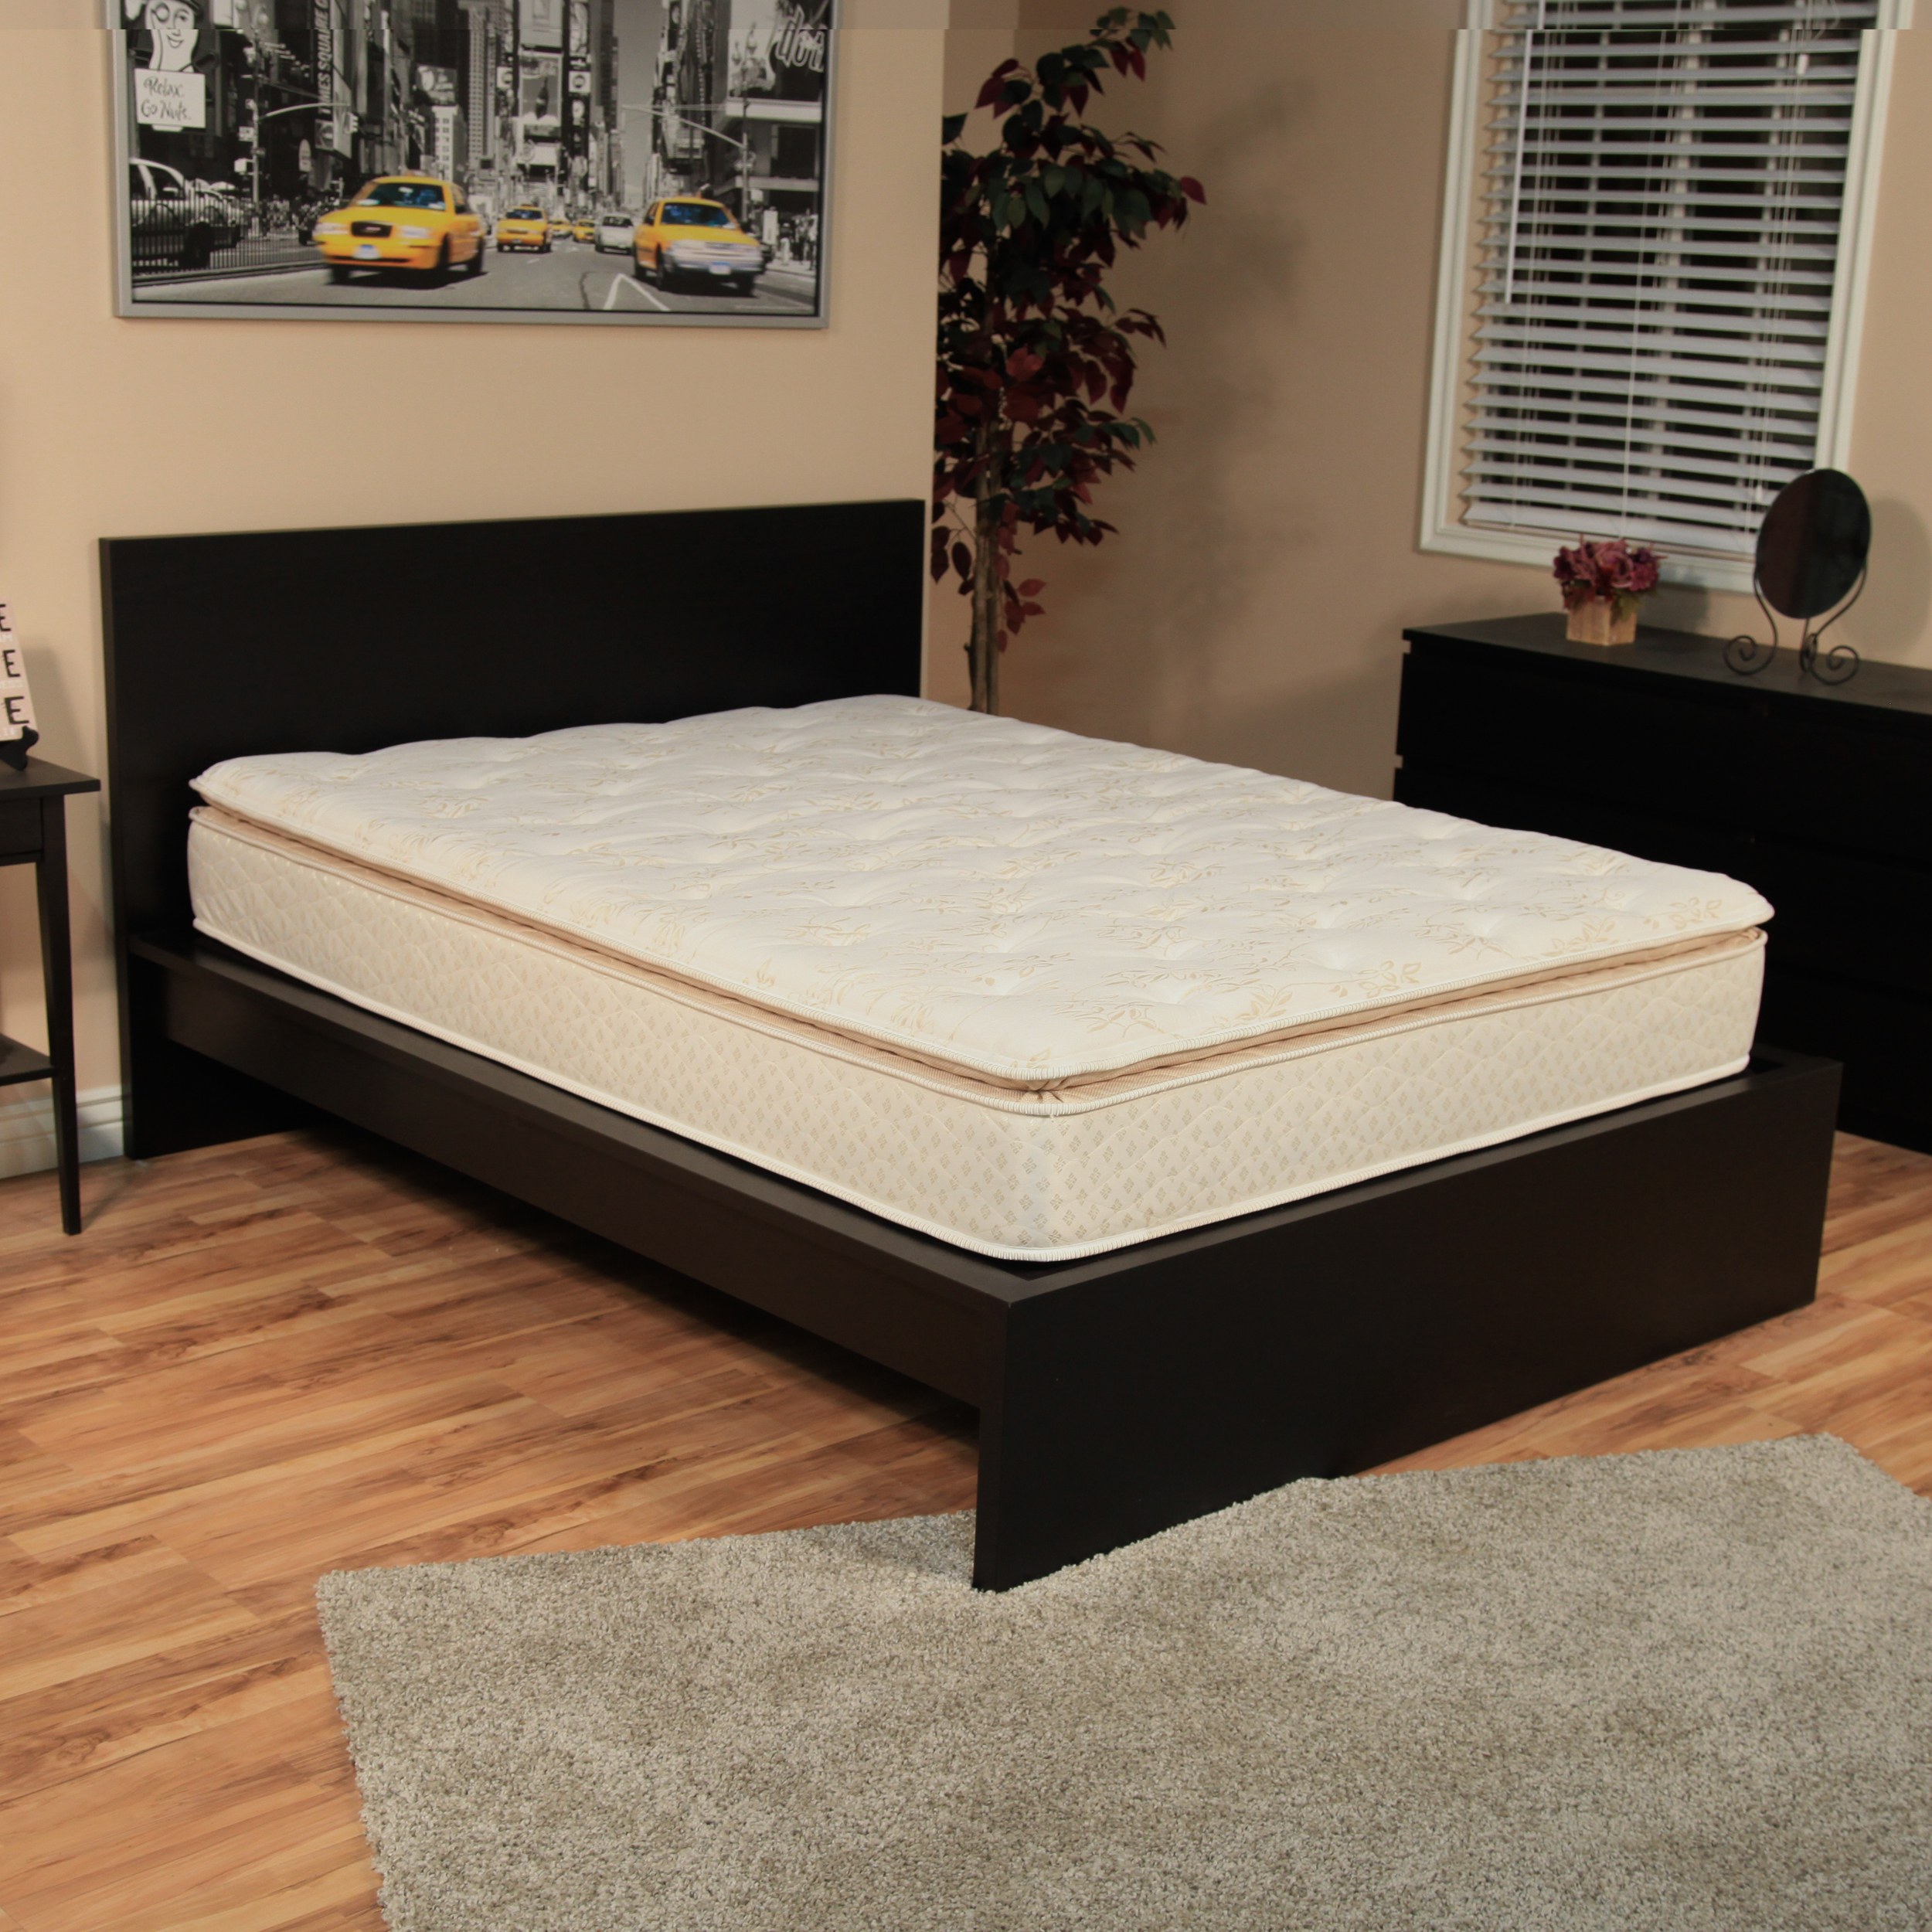 stand and ideas for is set sets plus metal sale prices box idyllic bedroom twin double bed measurements at frame frames xl king spring hd bedsstrongest black costco queen what dimensions artistic size charming boxspring mattress cheap princess beds full of costcoqueen